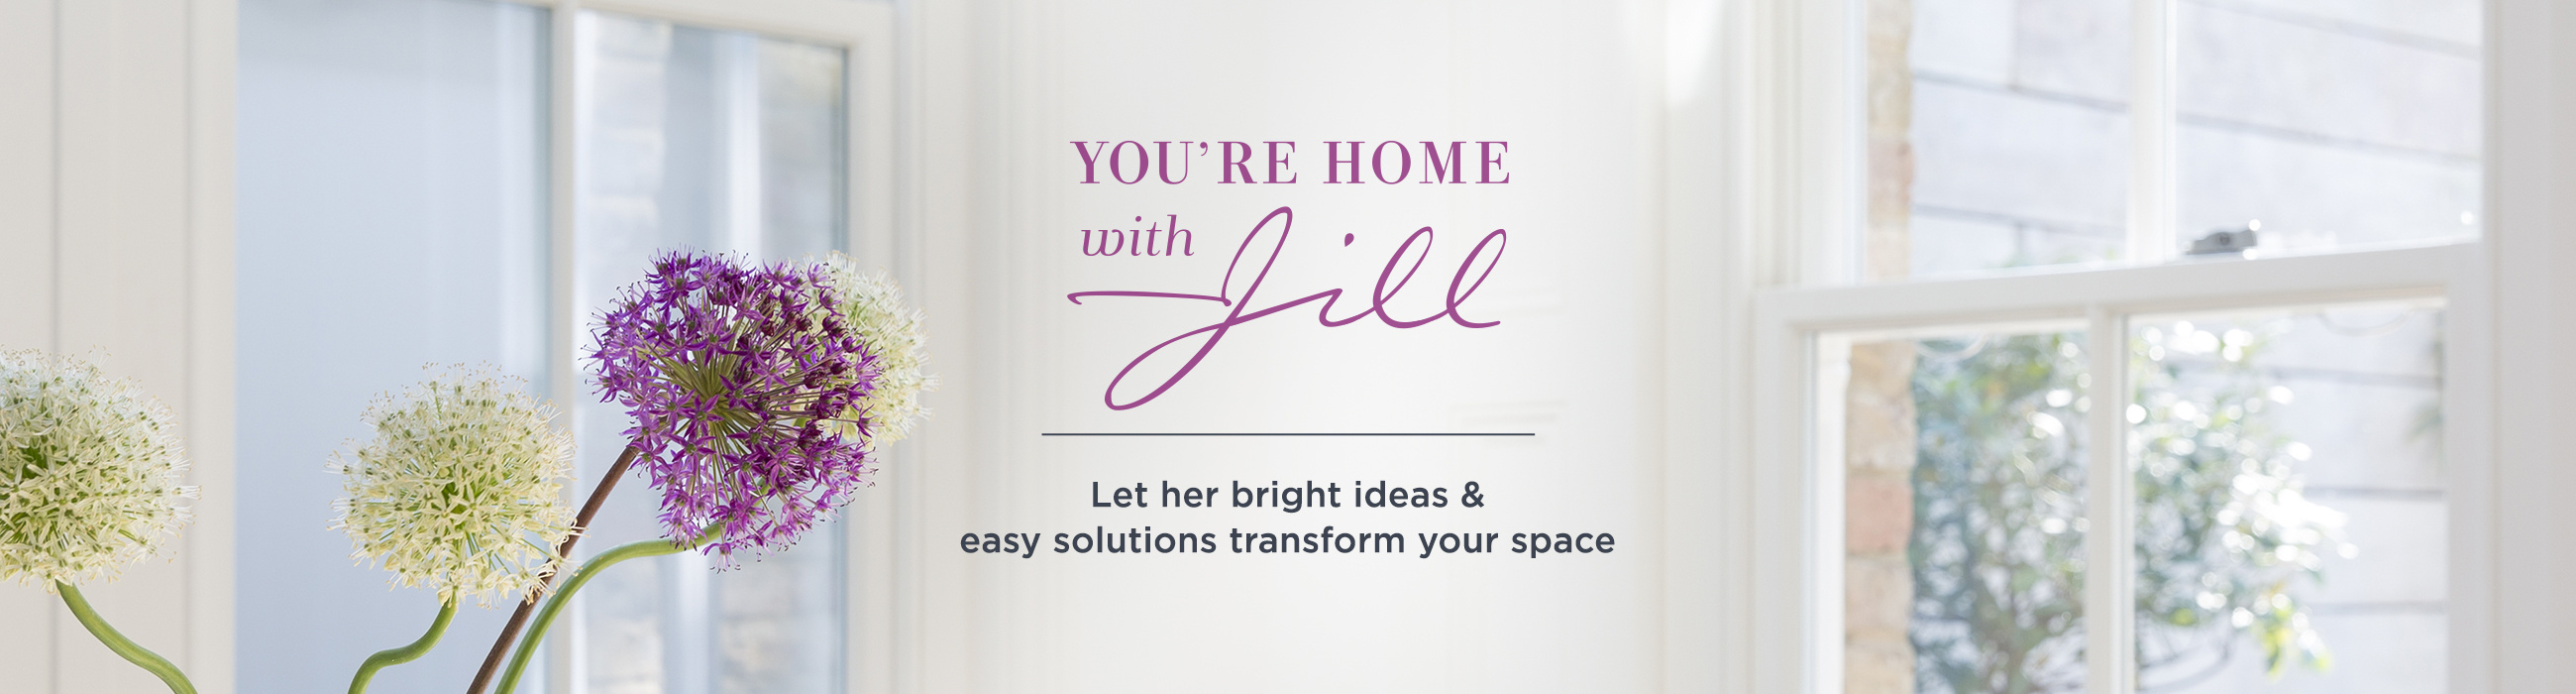 You're Home with Jill - Let her bright ideas & easy solutions transform your space